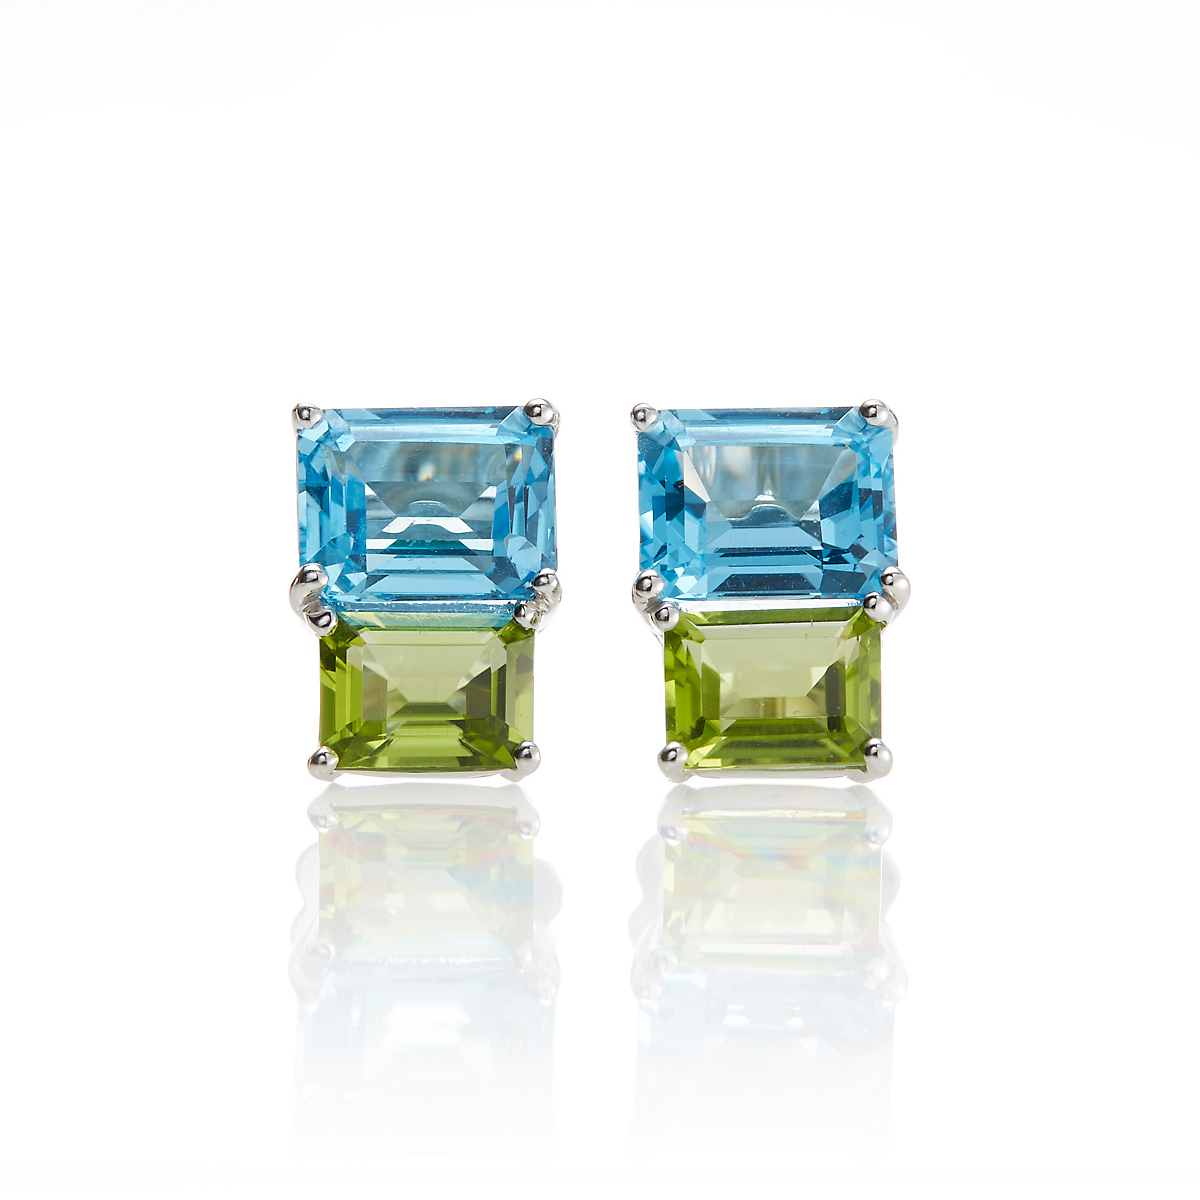 Gump's Blue Topaz Peridot Square Stacked Earrings